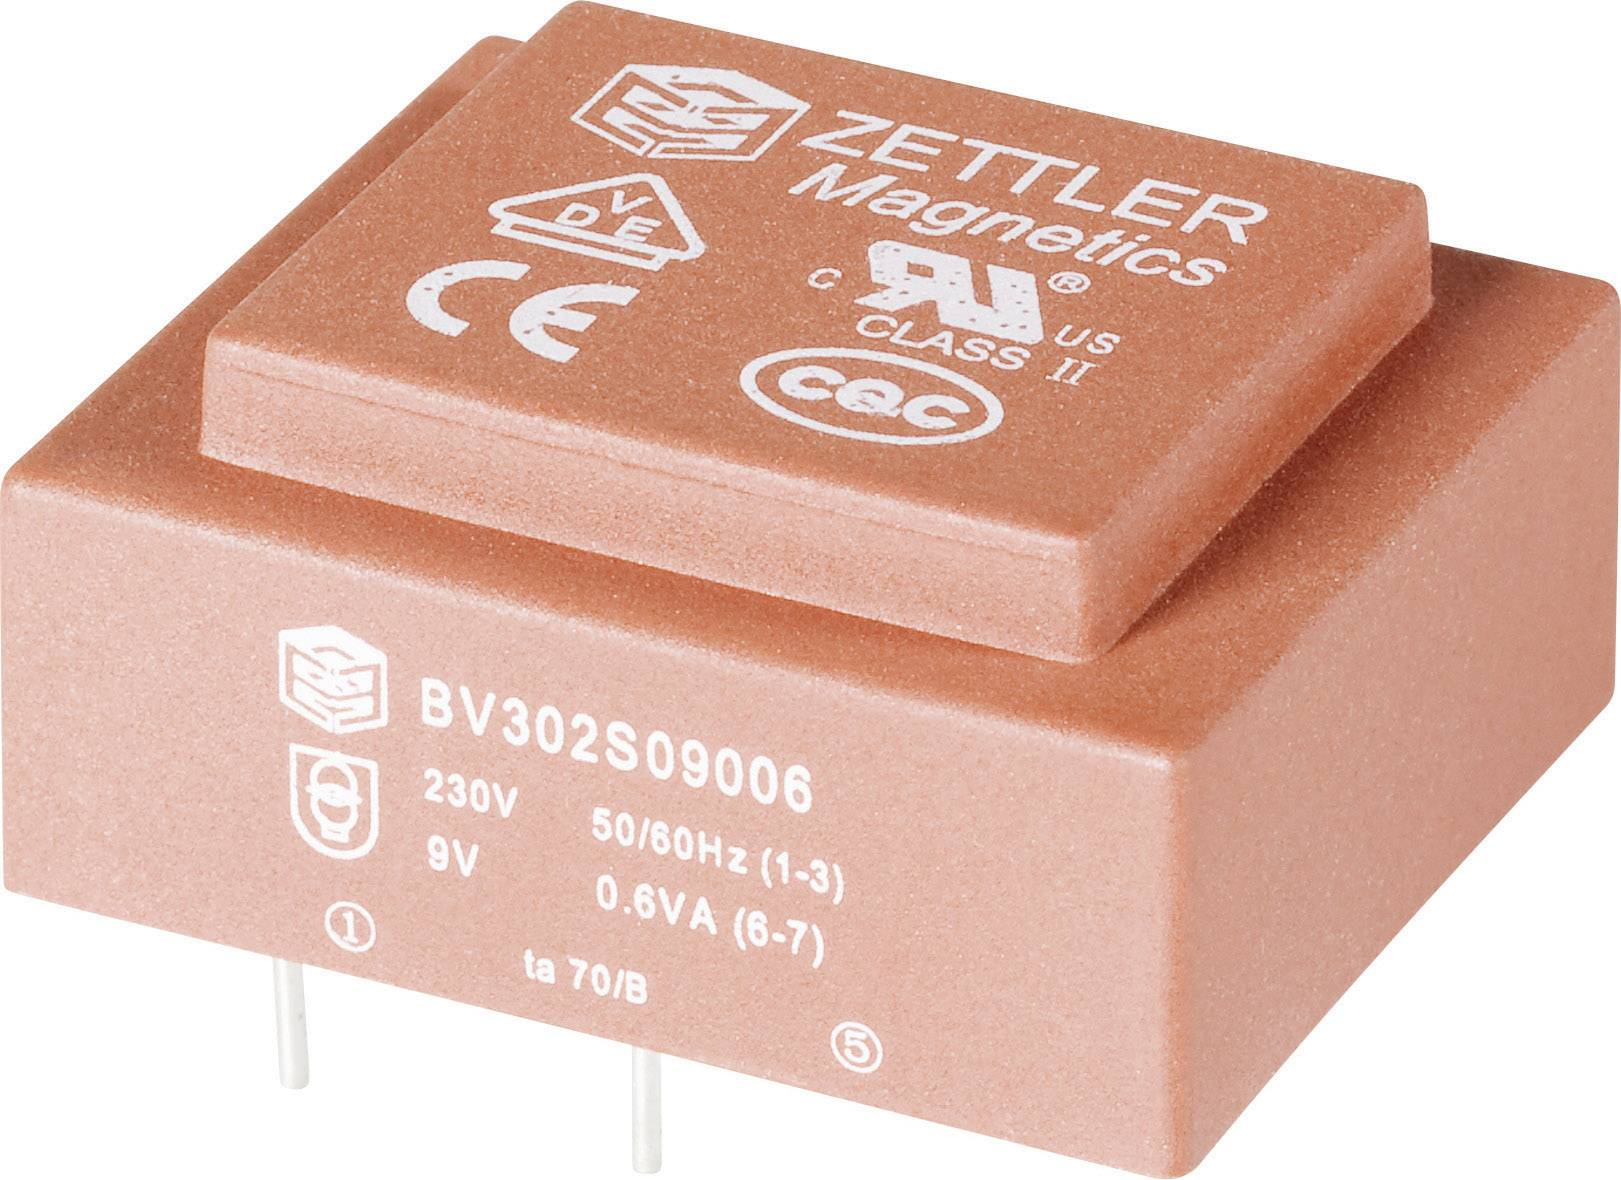 Transformátor do DPS Zettler Magnetics El30, 230 V/24 V, 25 mA, 1,5 VA